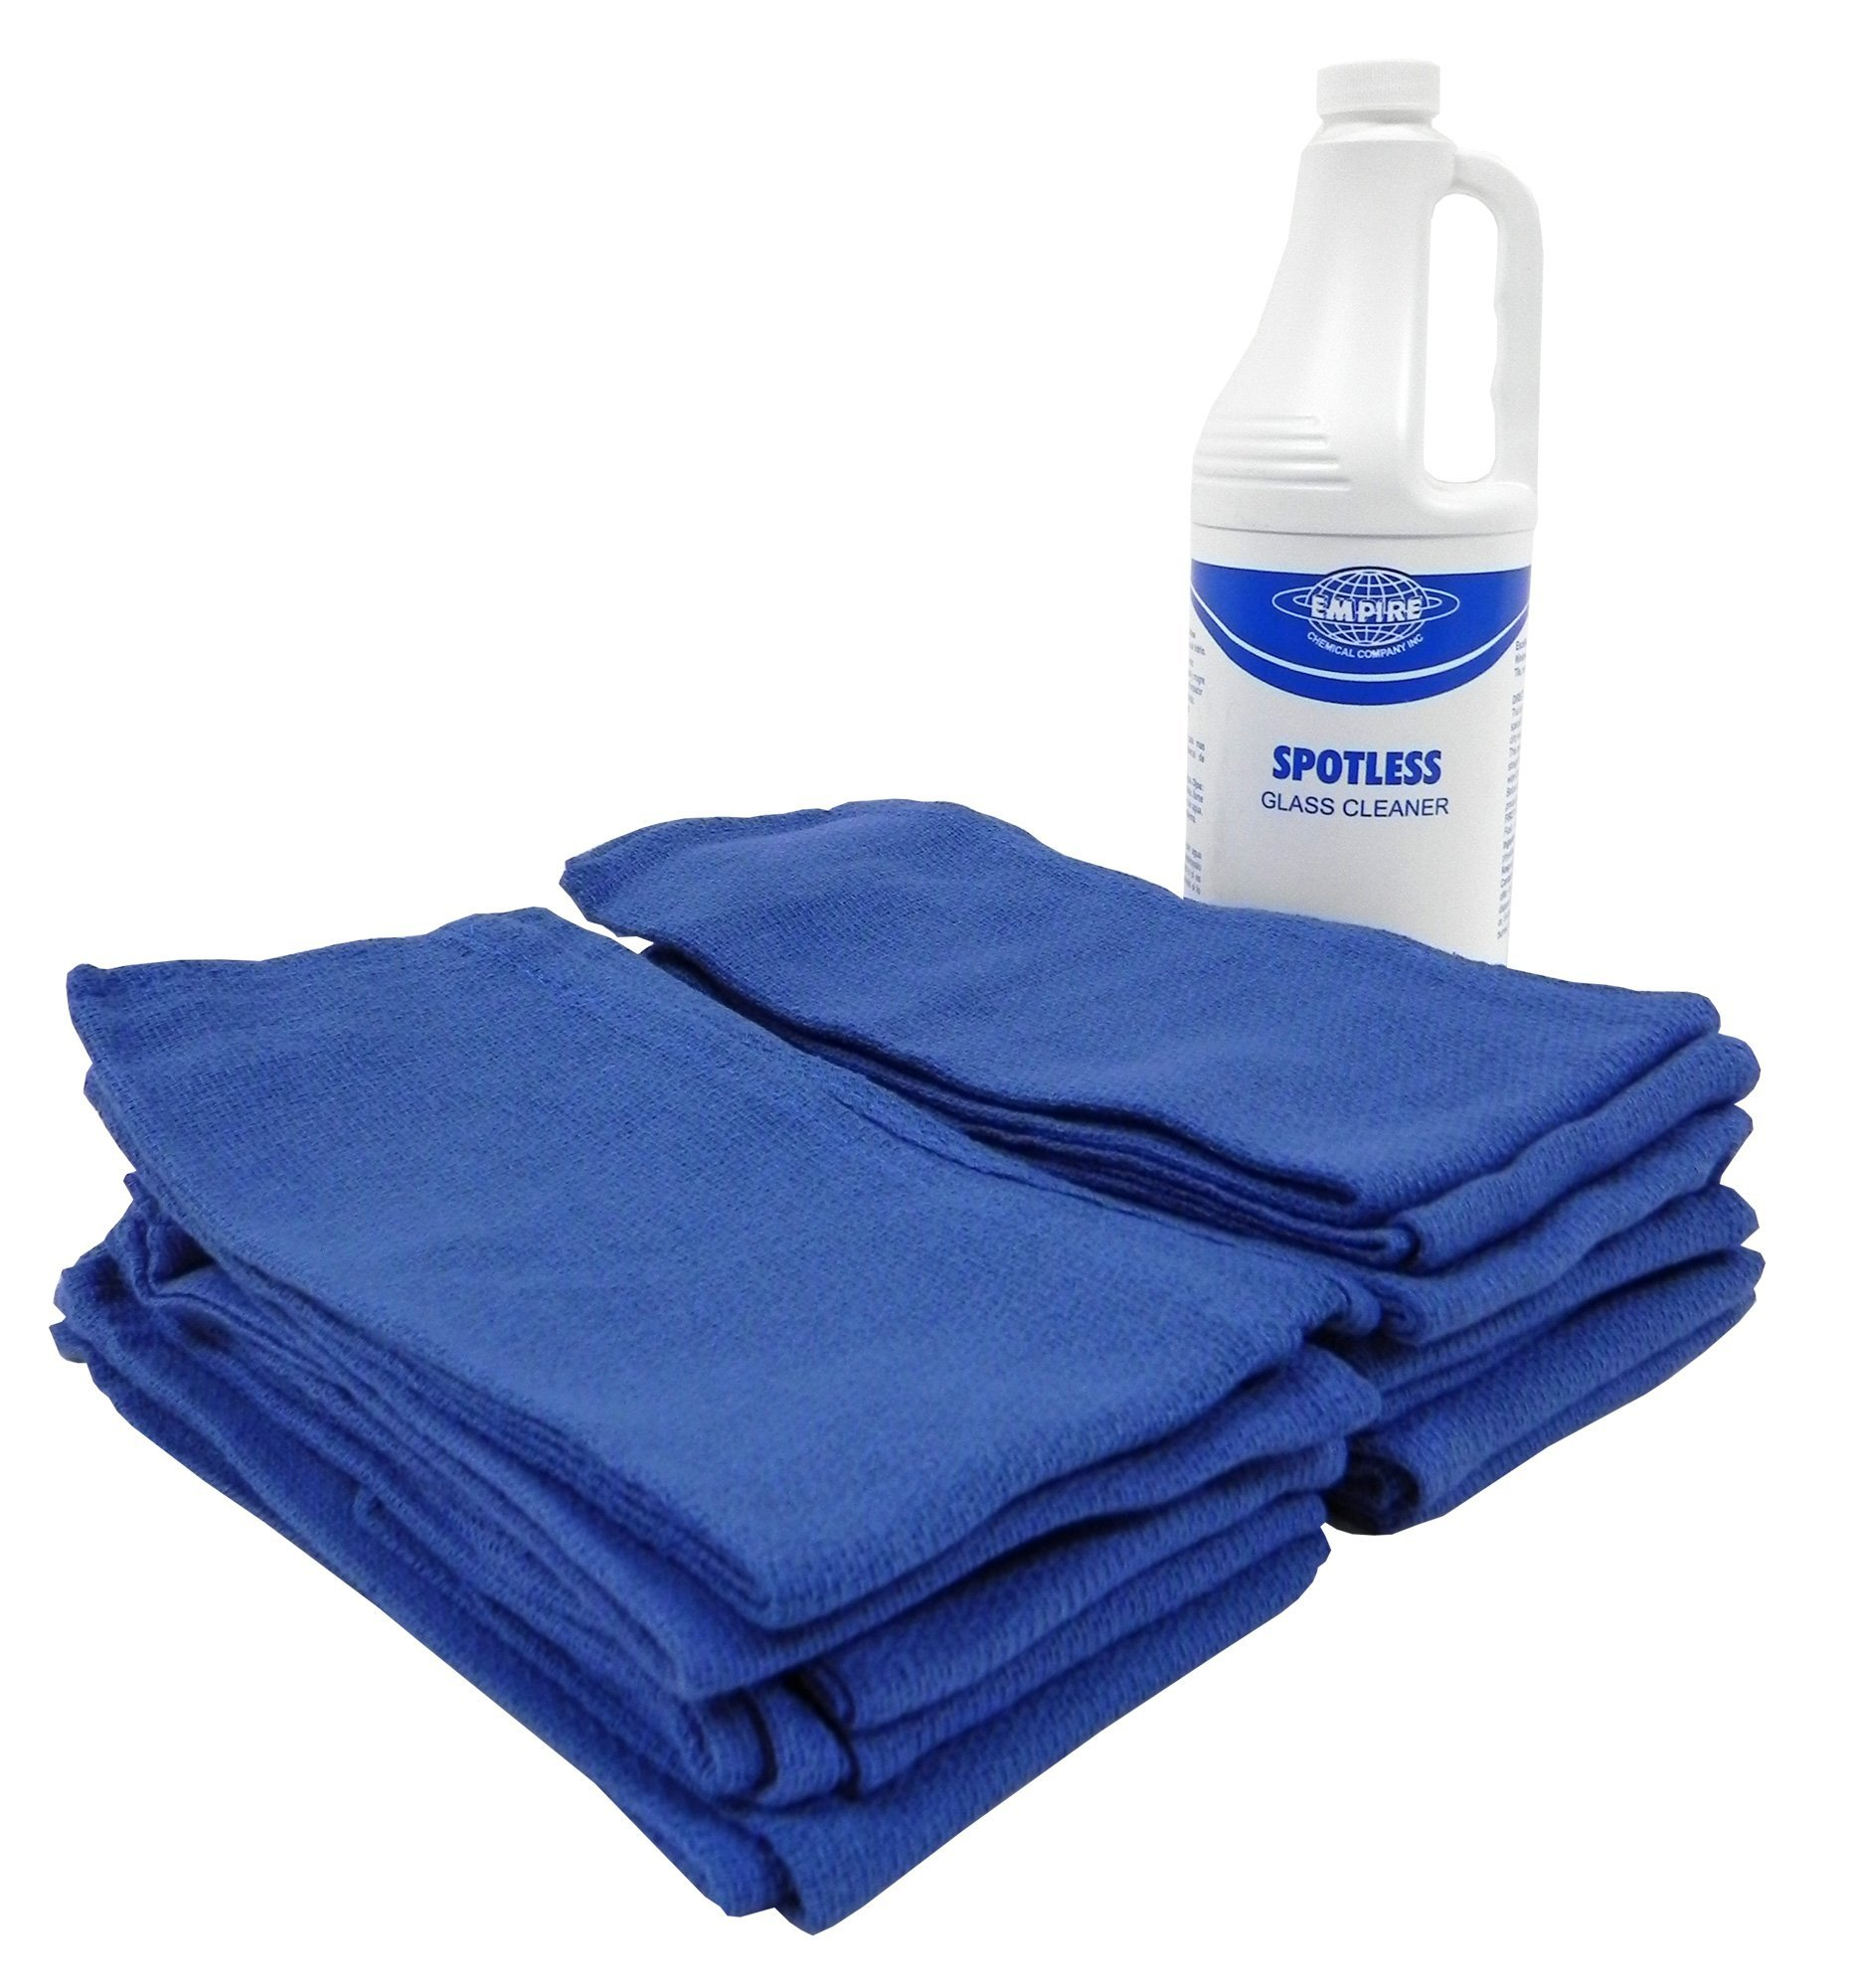 Blue Surgical Rags/Towels 16''x24'' - (1 Dozen) with Ready to Use Glass & Window Cleaner and Sprayer for Streak Free Cleaning